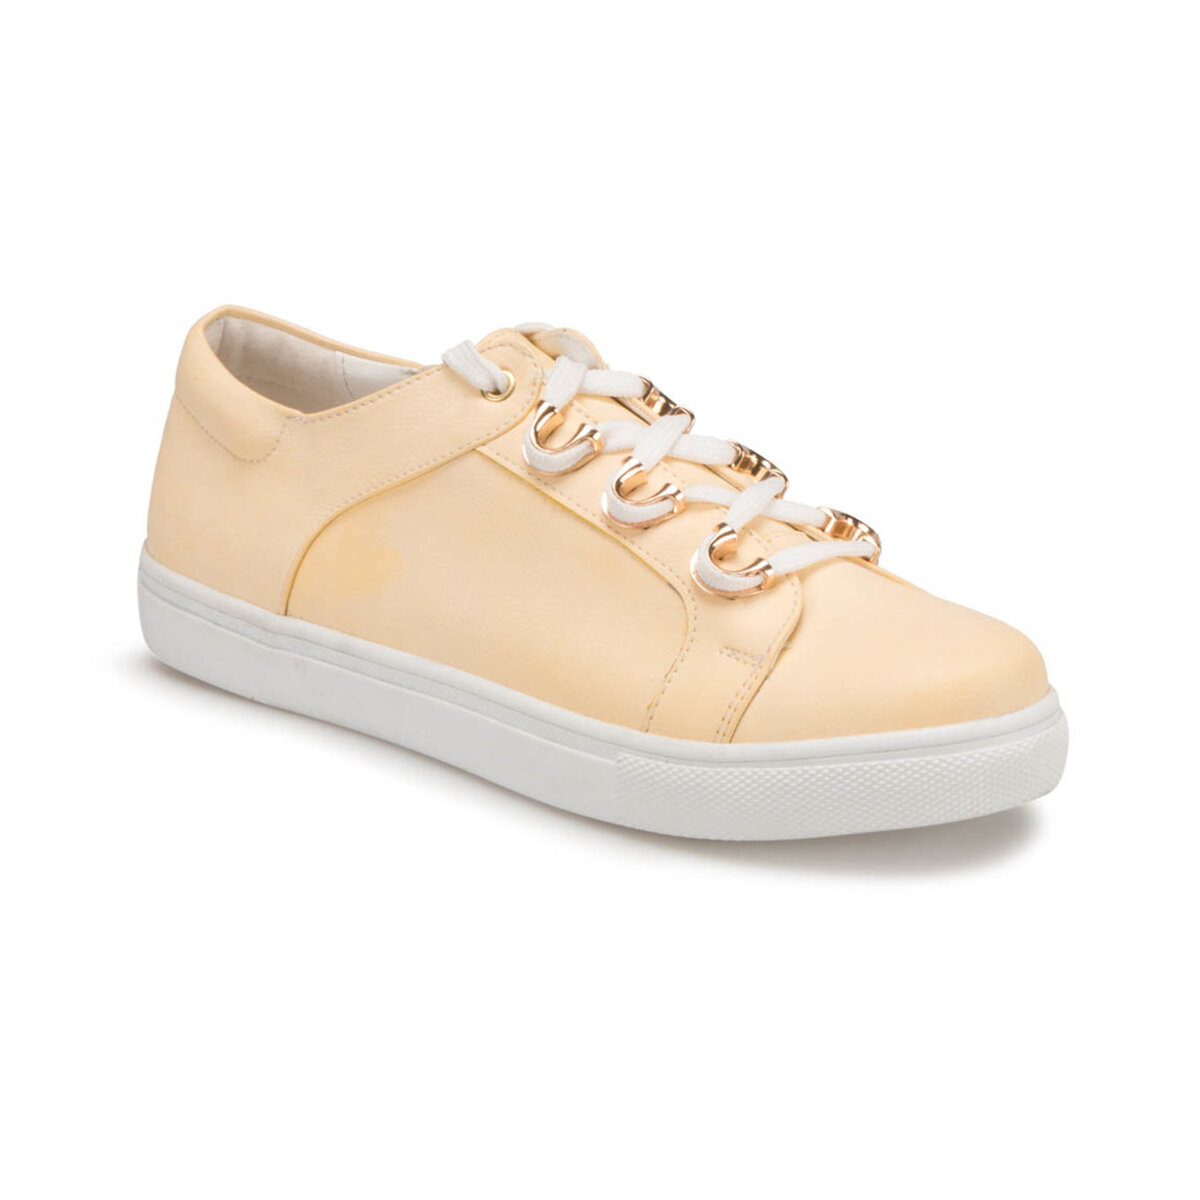 FLO U1951 Yellow Women 'S Sneaker Shoes Art Bella